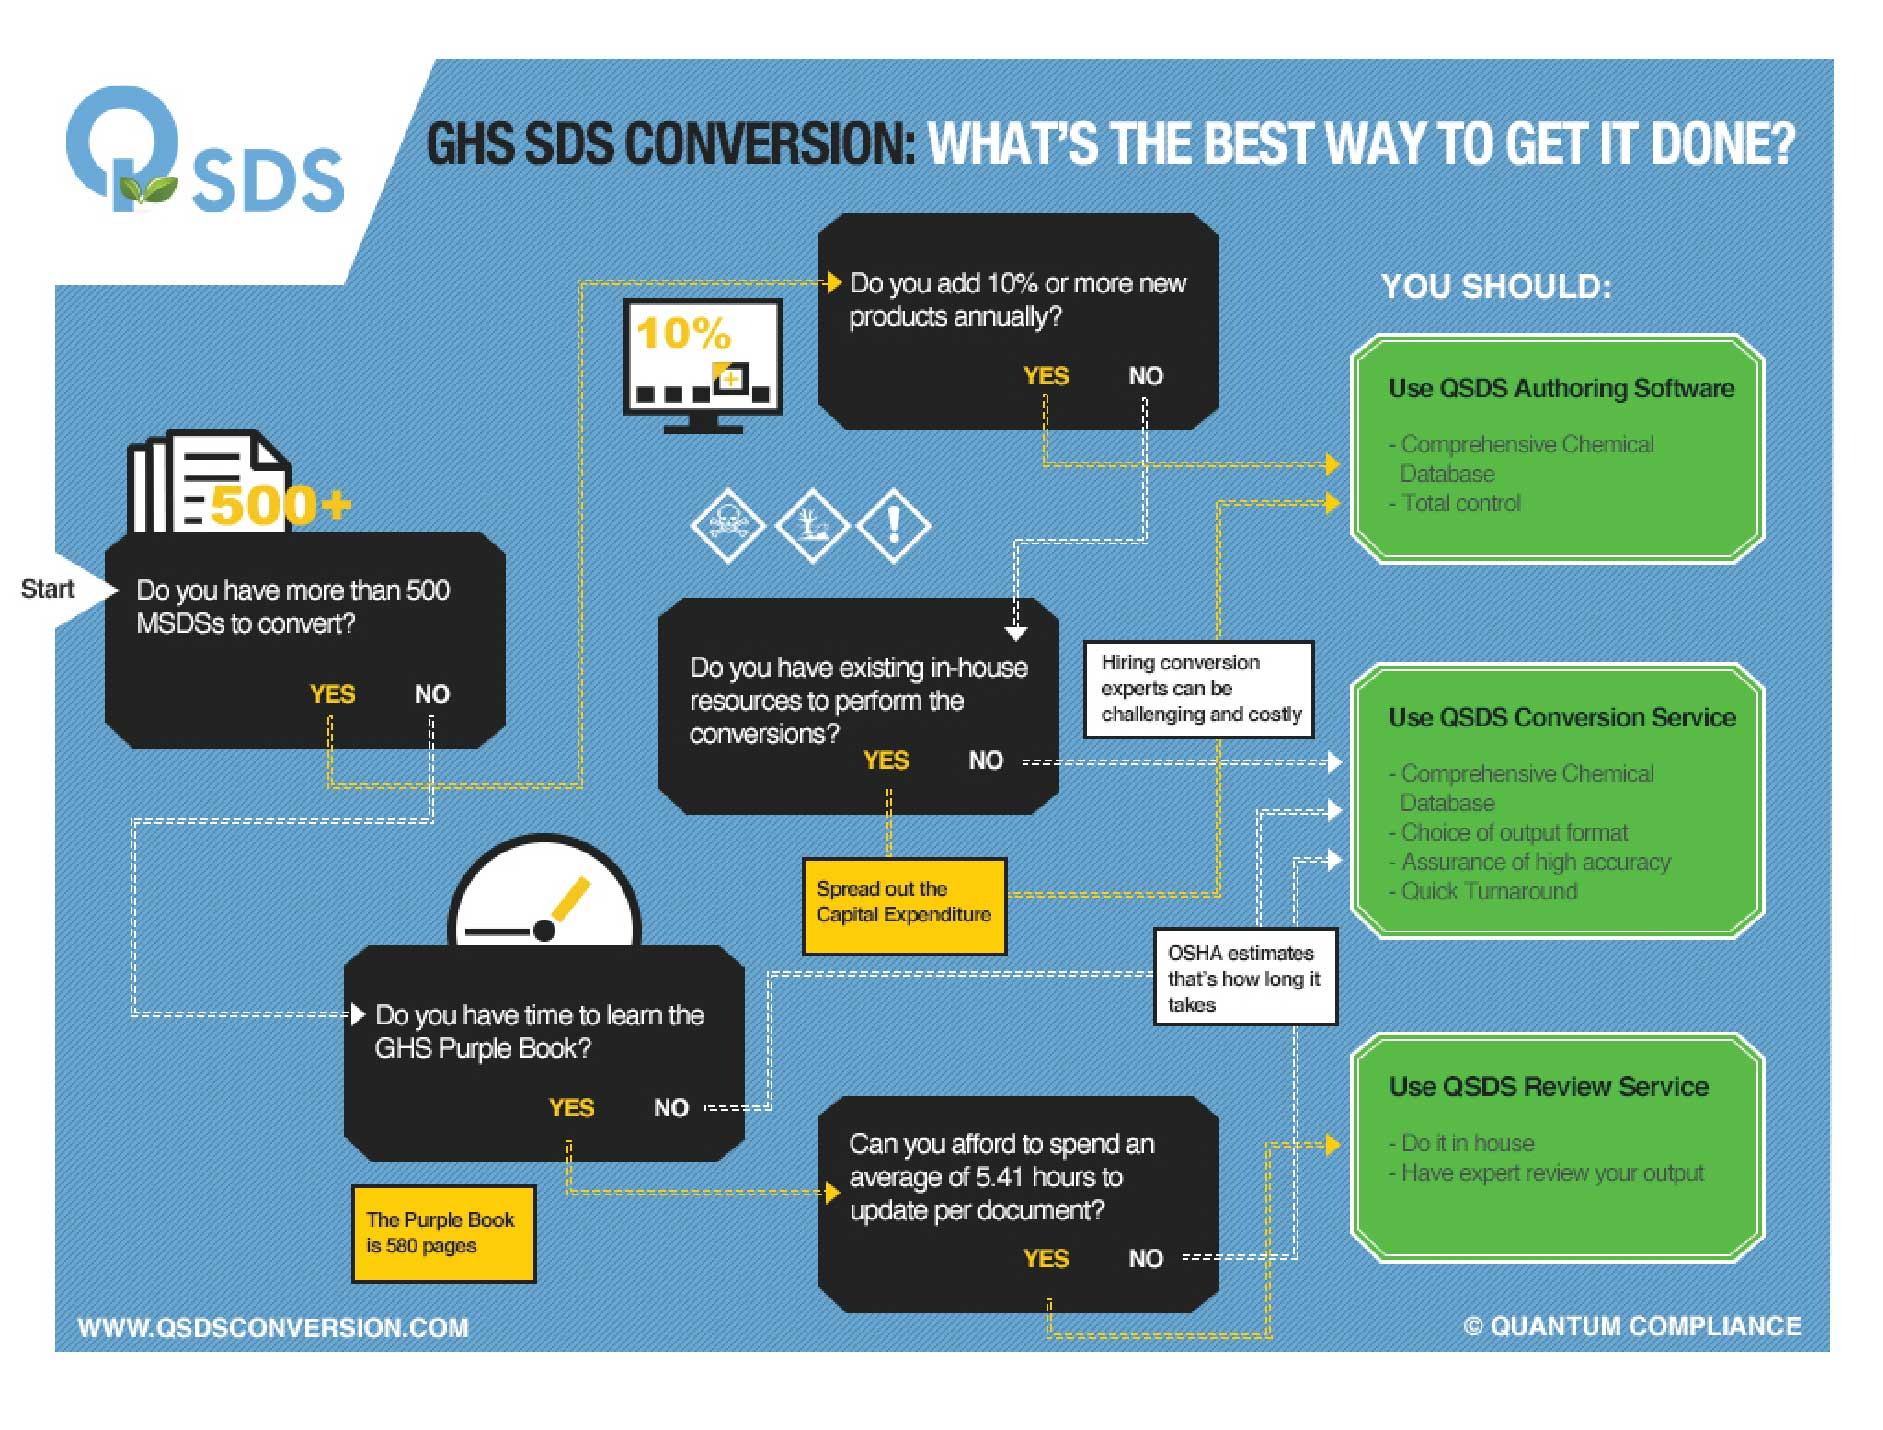 Your Best Path to GHS SDS Conversion